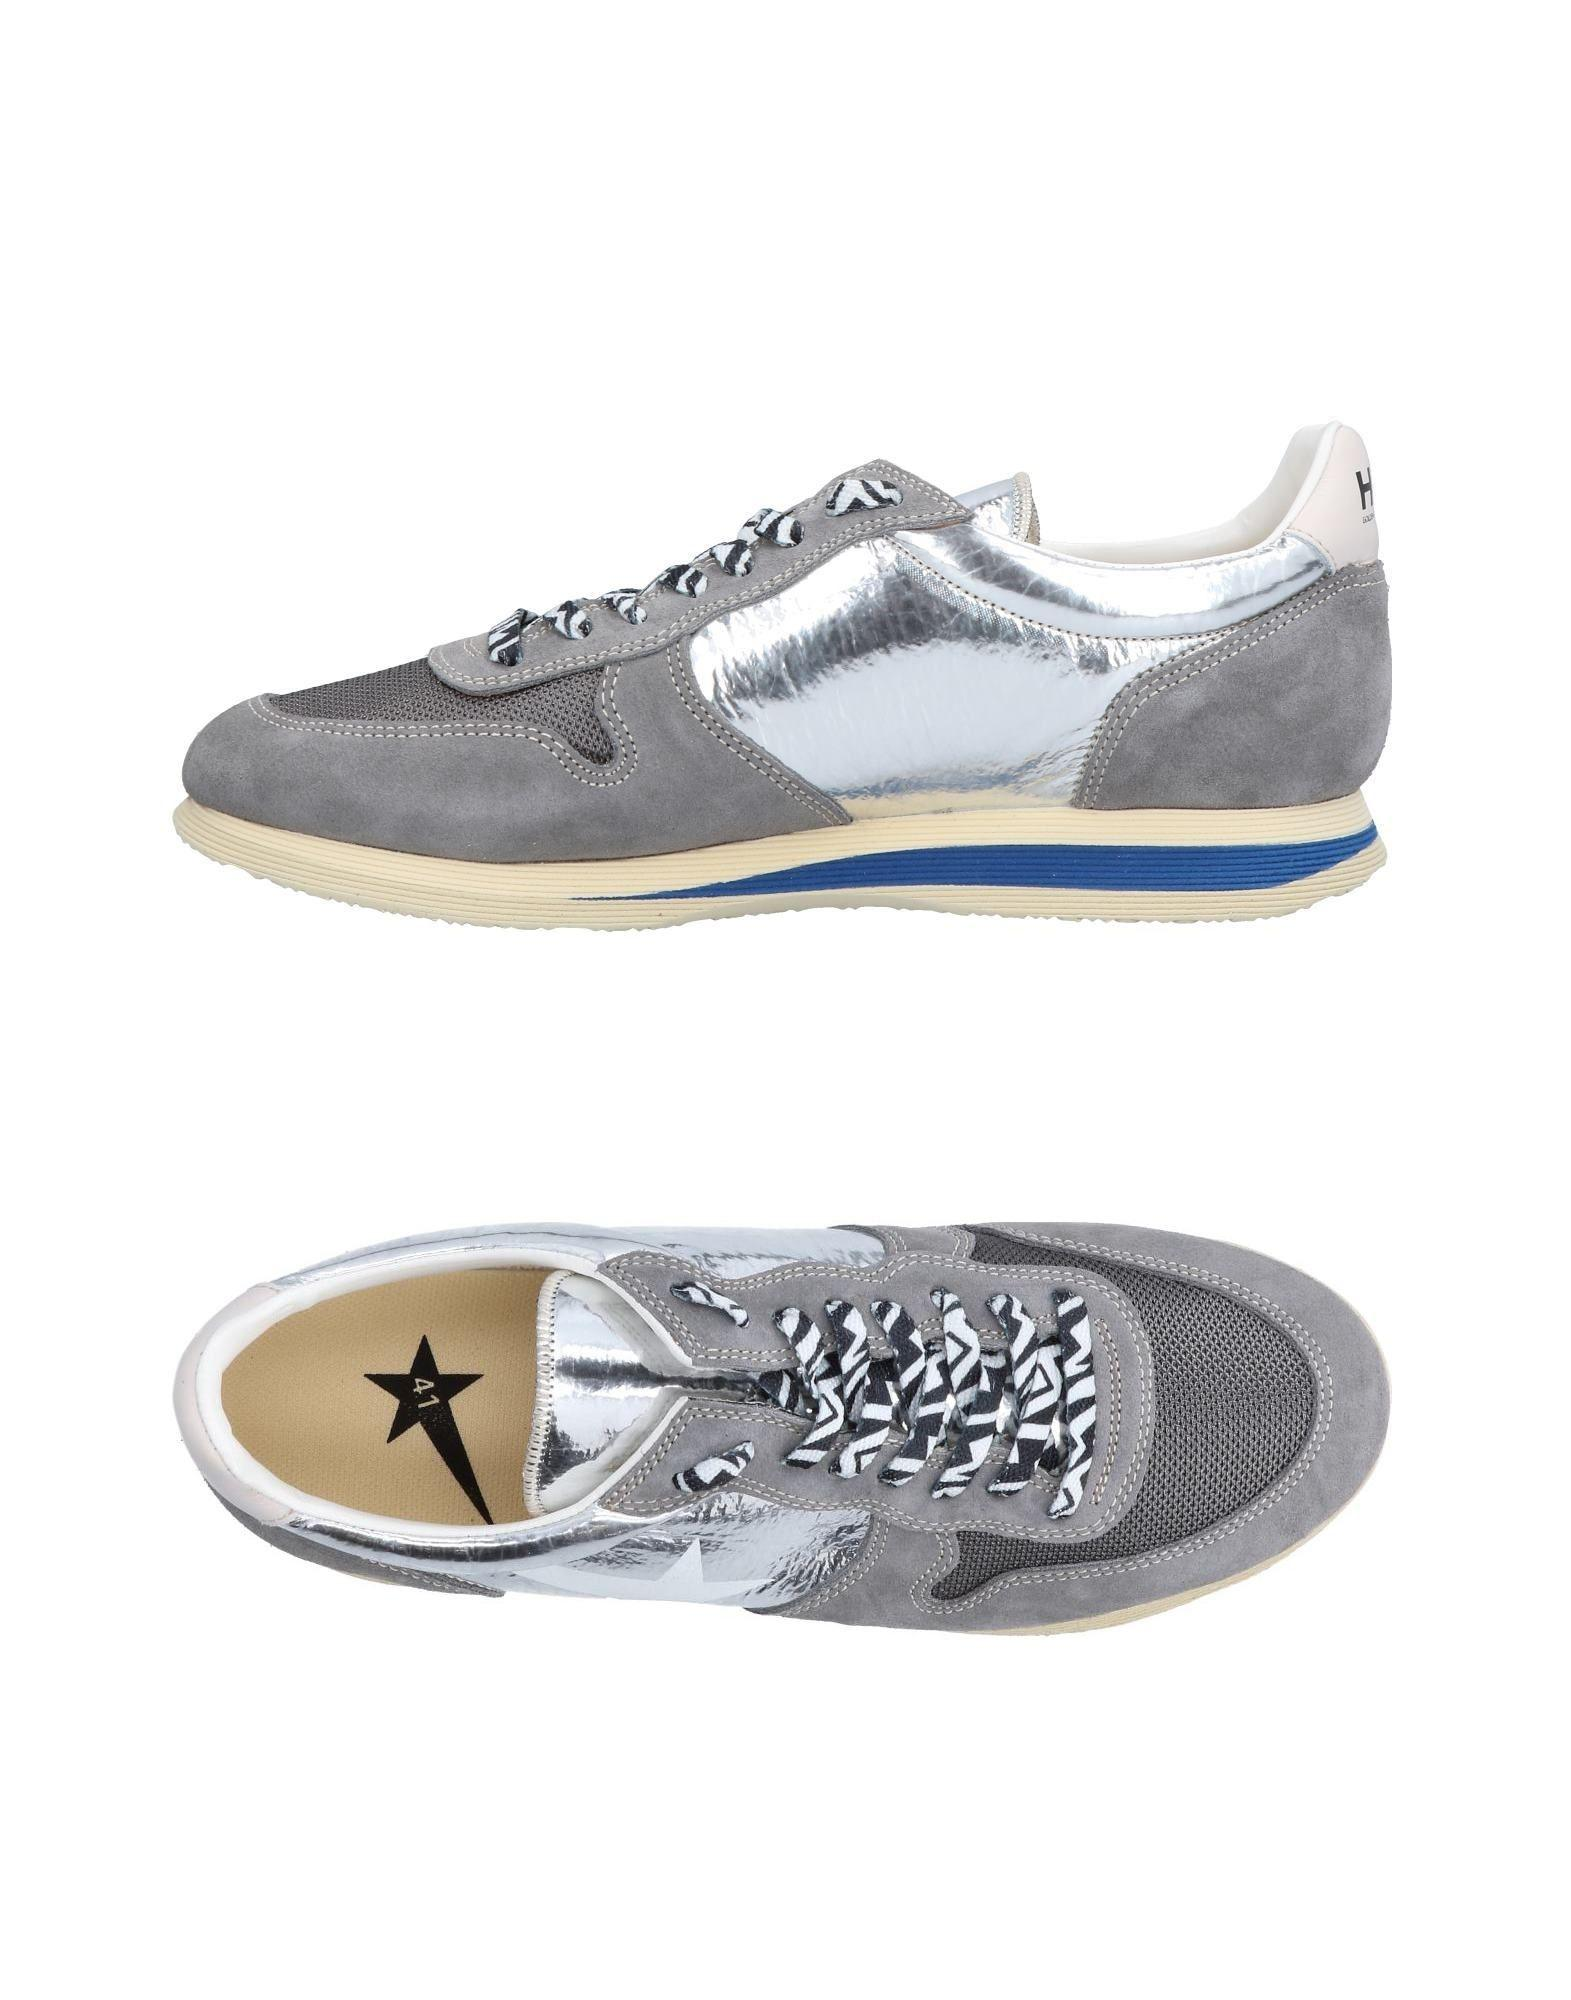 Golden Goose Deluxe Brandlow-top sneakers